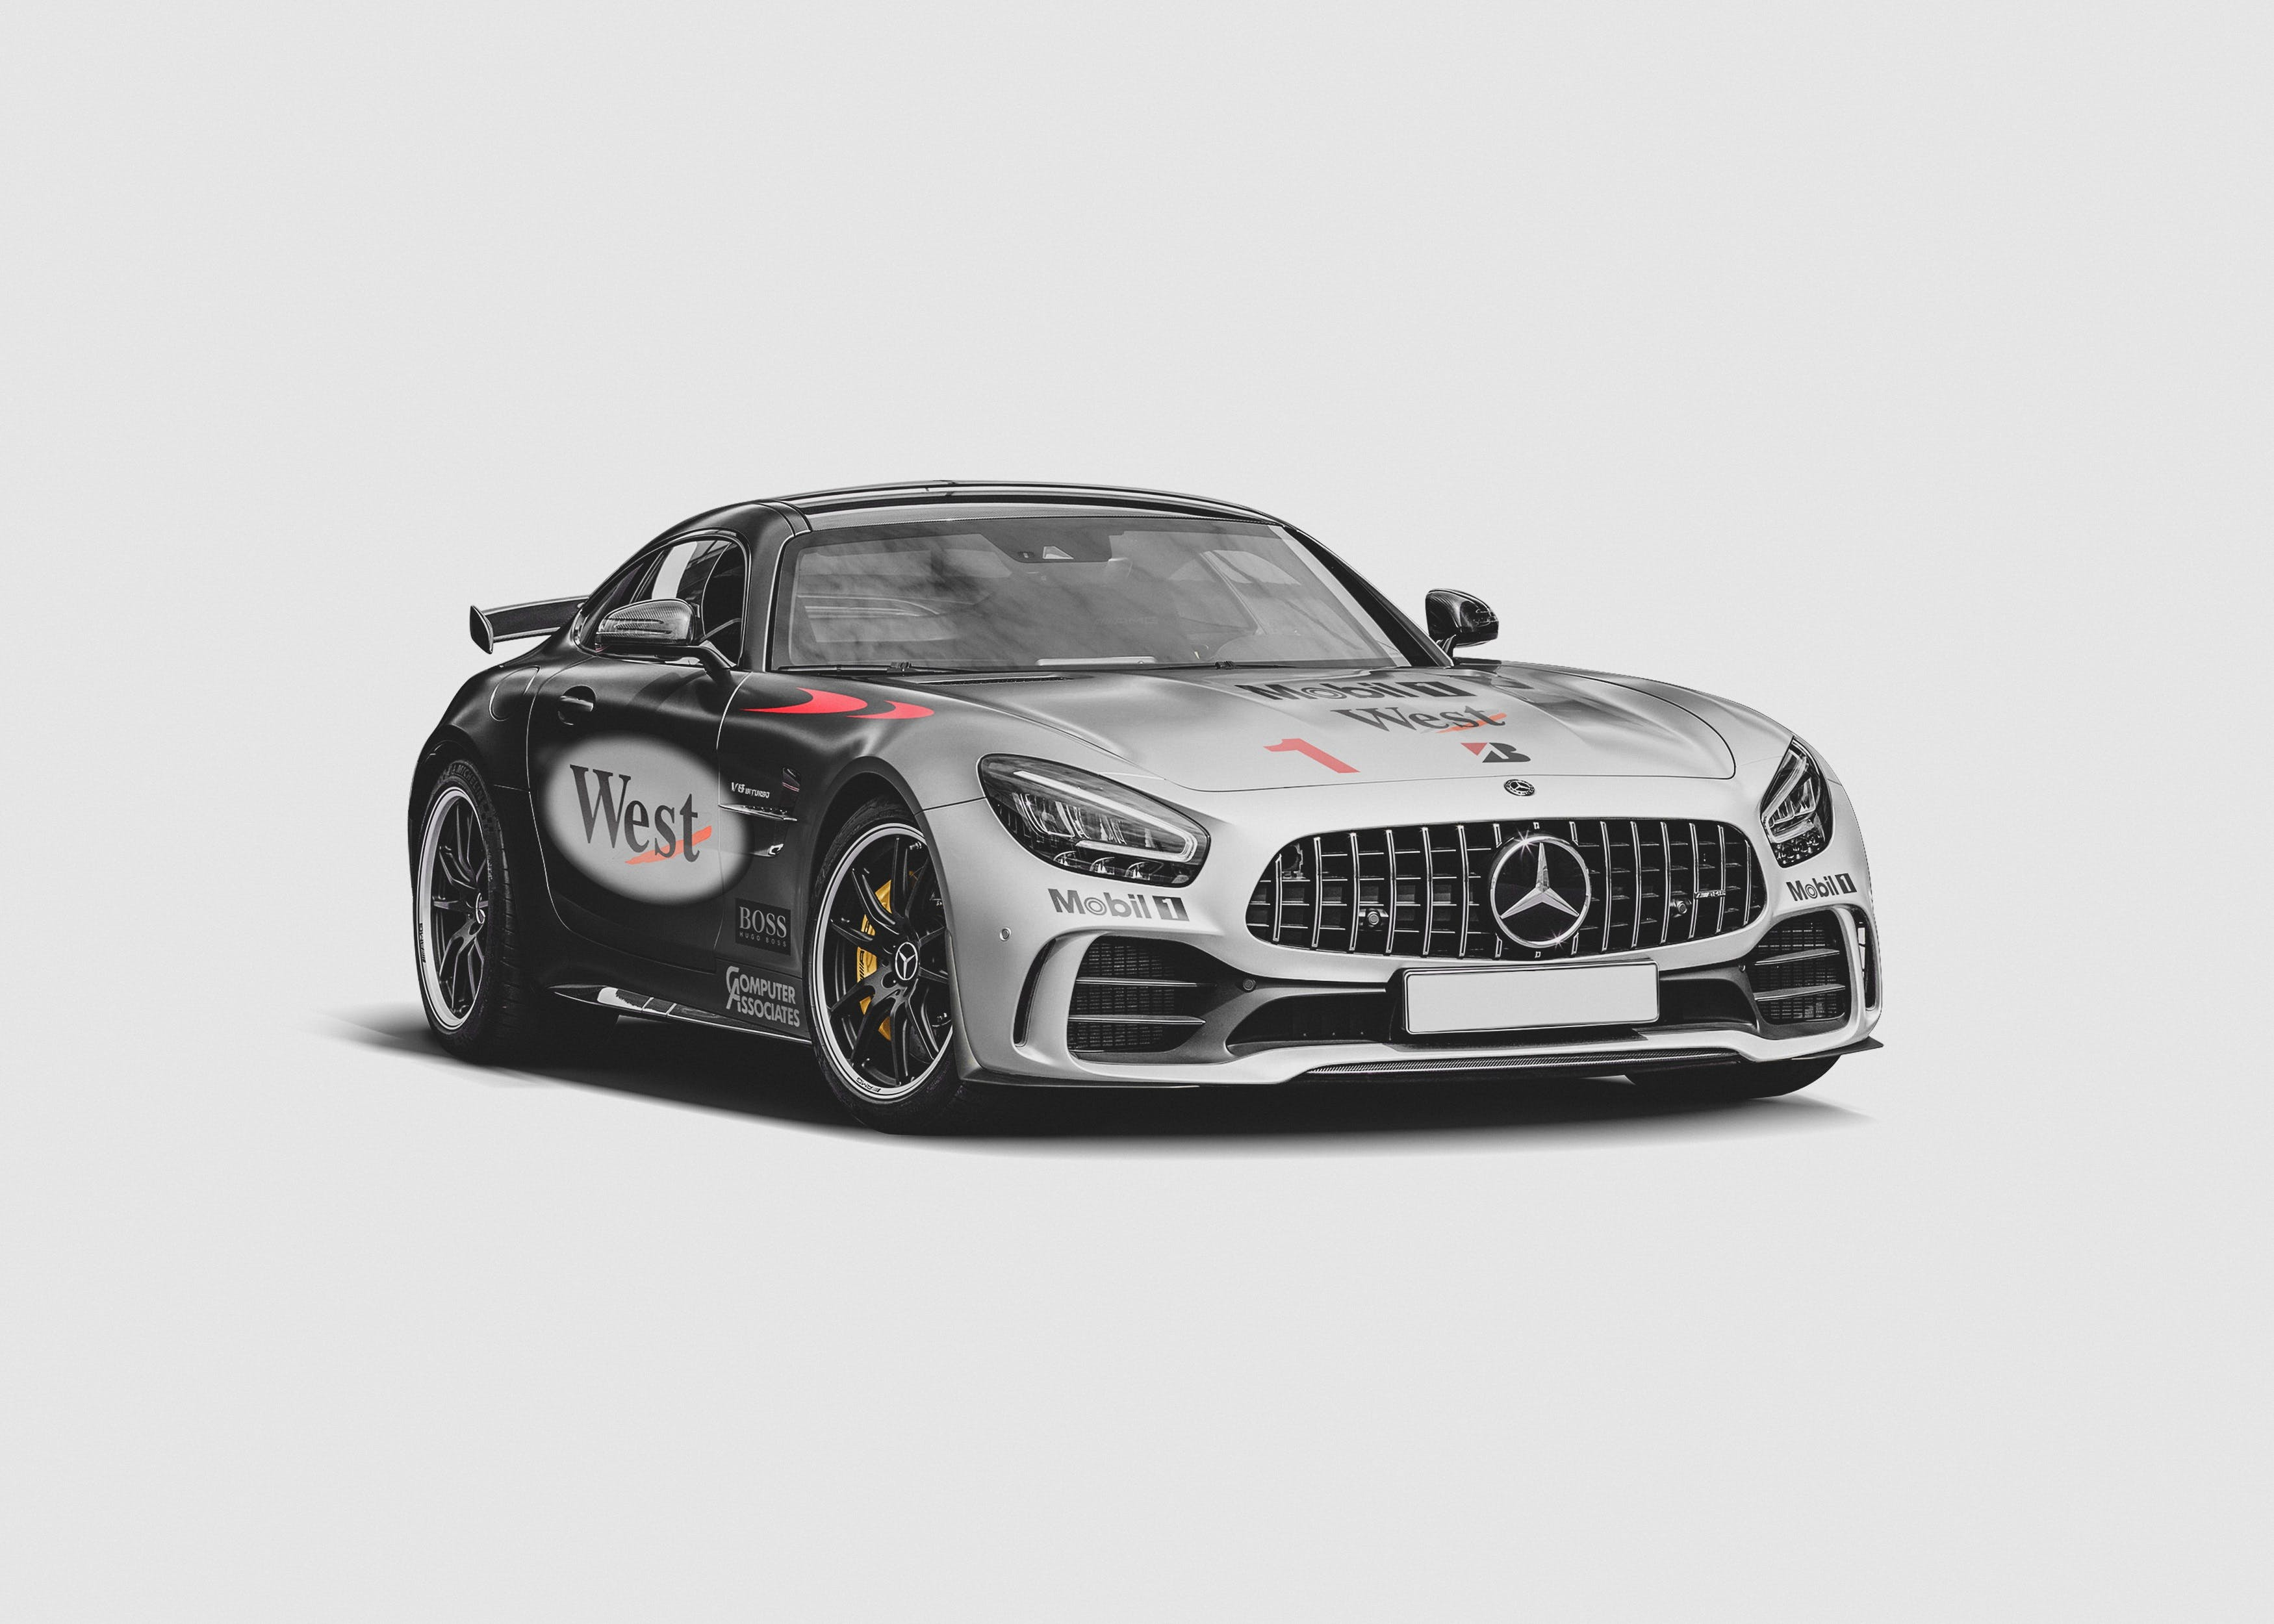 Supercars-with-f1-livery-3